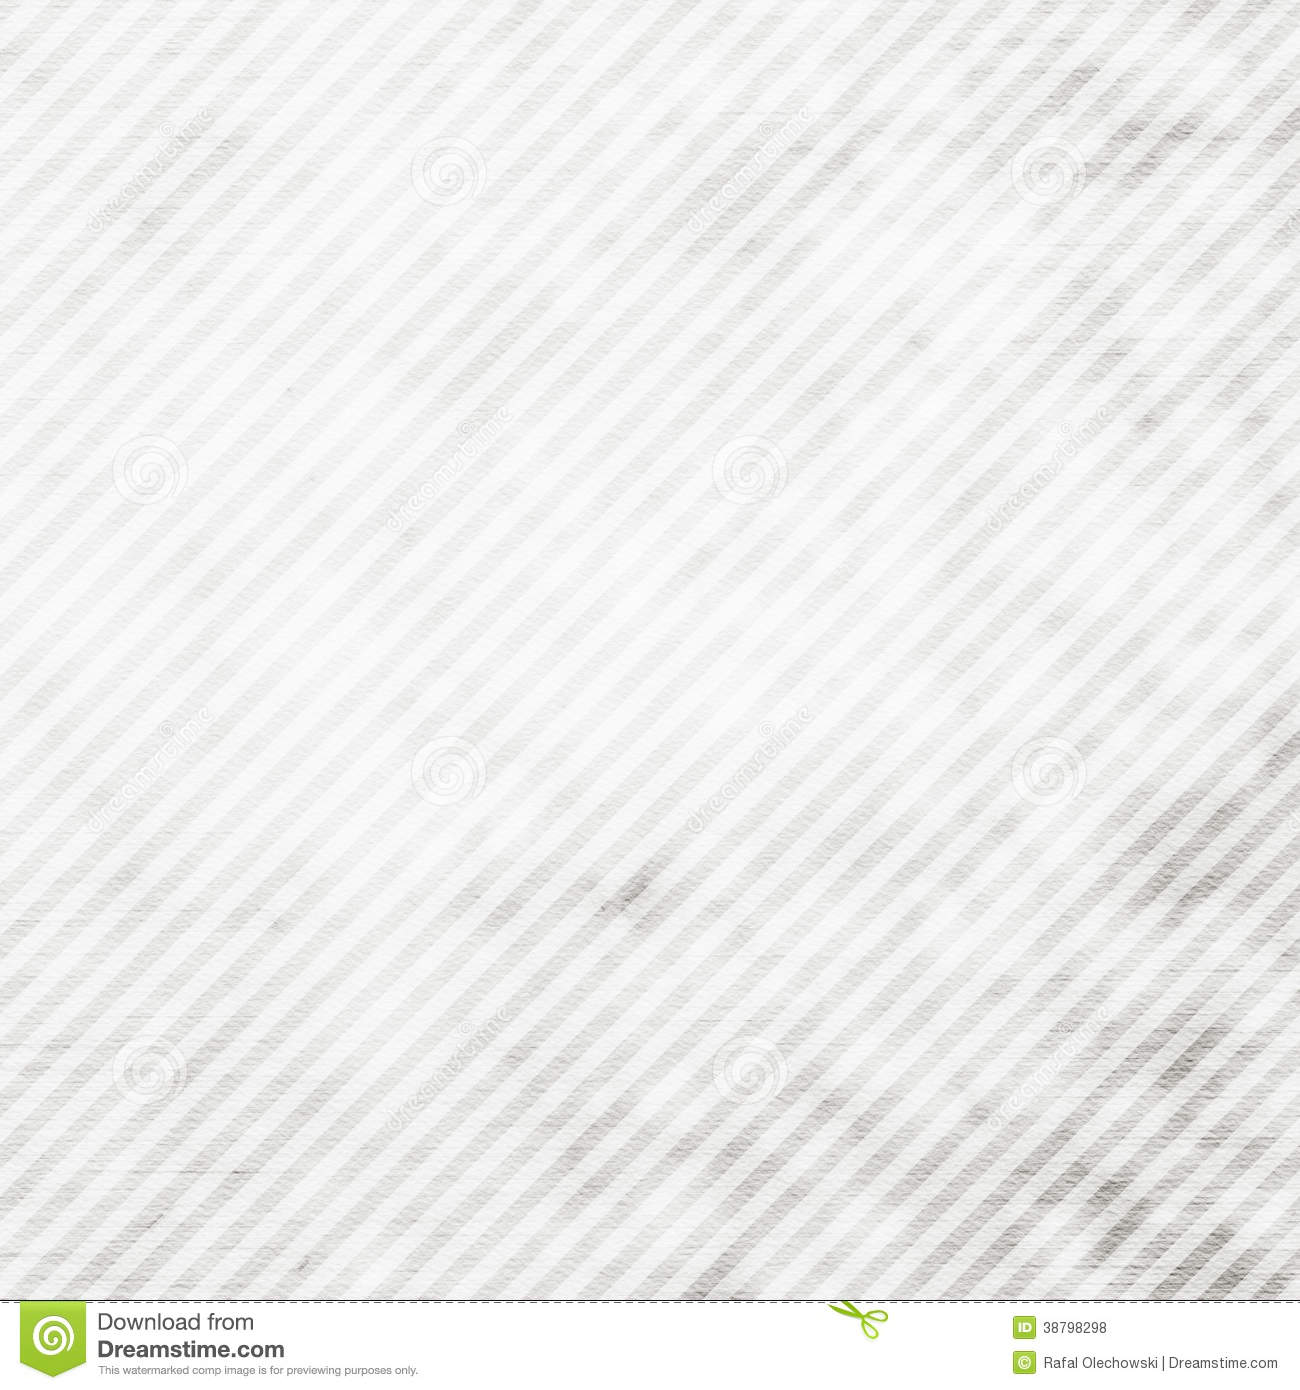 Grunge White Paper Template Texture Illustration Image – Free White Paper Templates